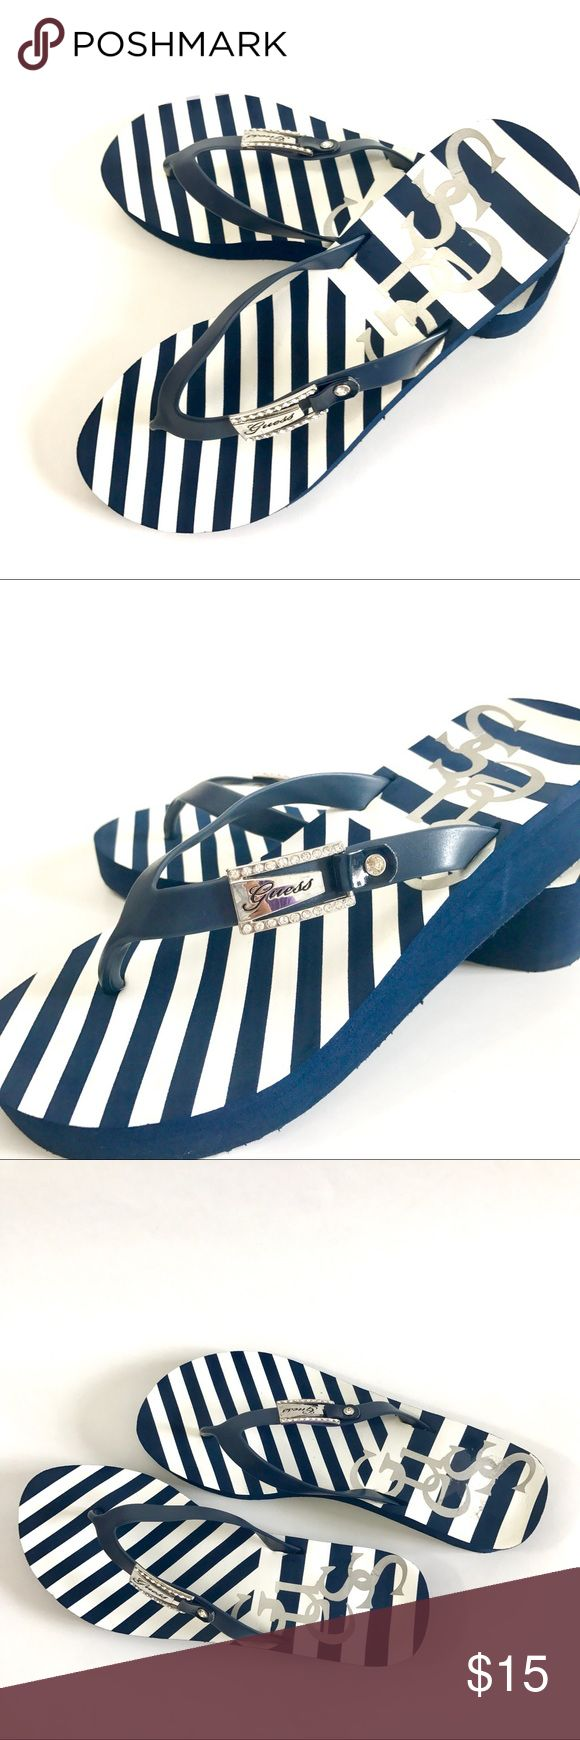 GUESS Platform blue & white striped Flip Flops Blue and White Sailor Platform Guess Flip Flops, Worn Once, Size 8 Guess Shoes Sandals